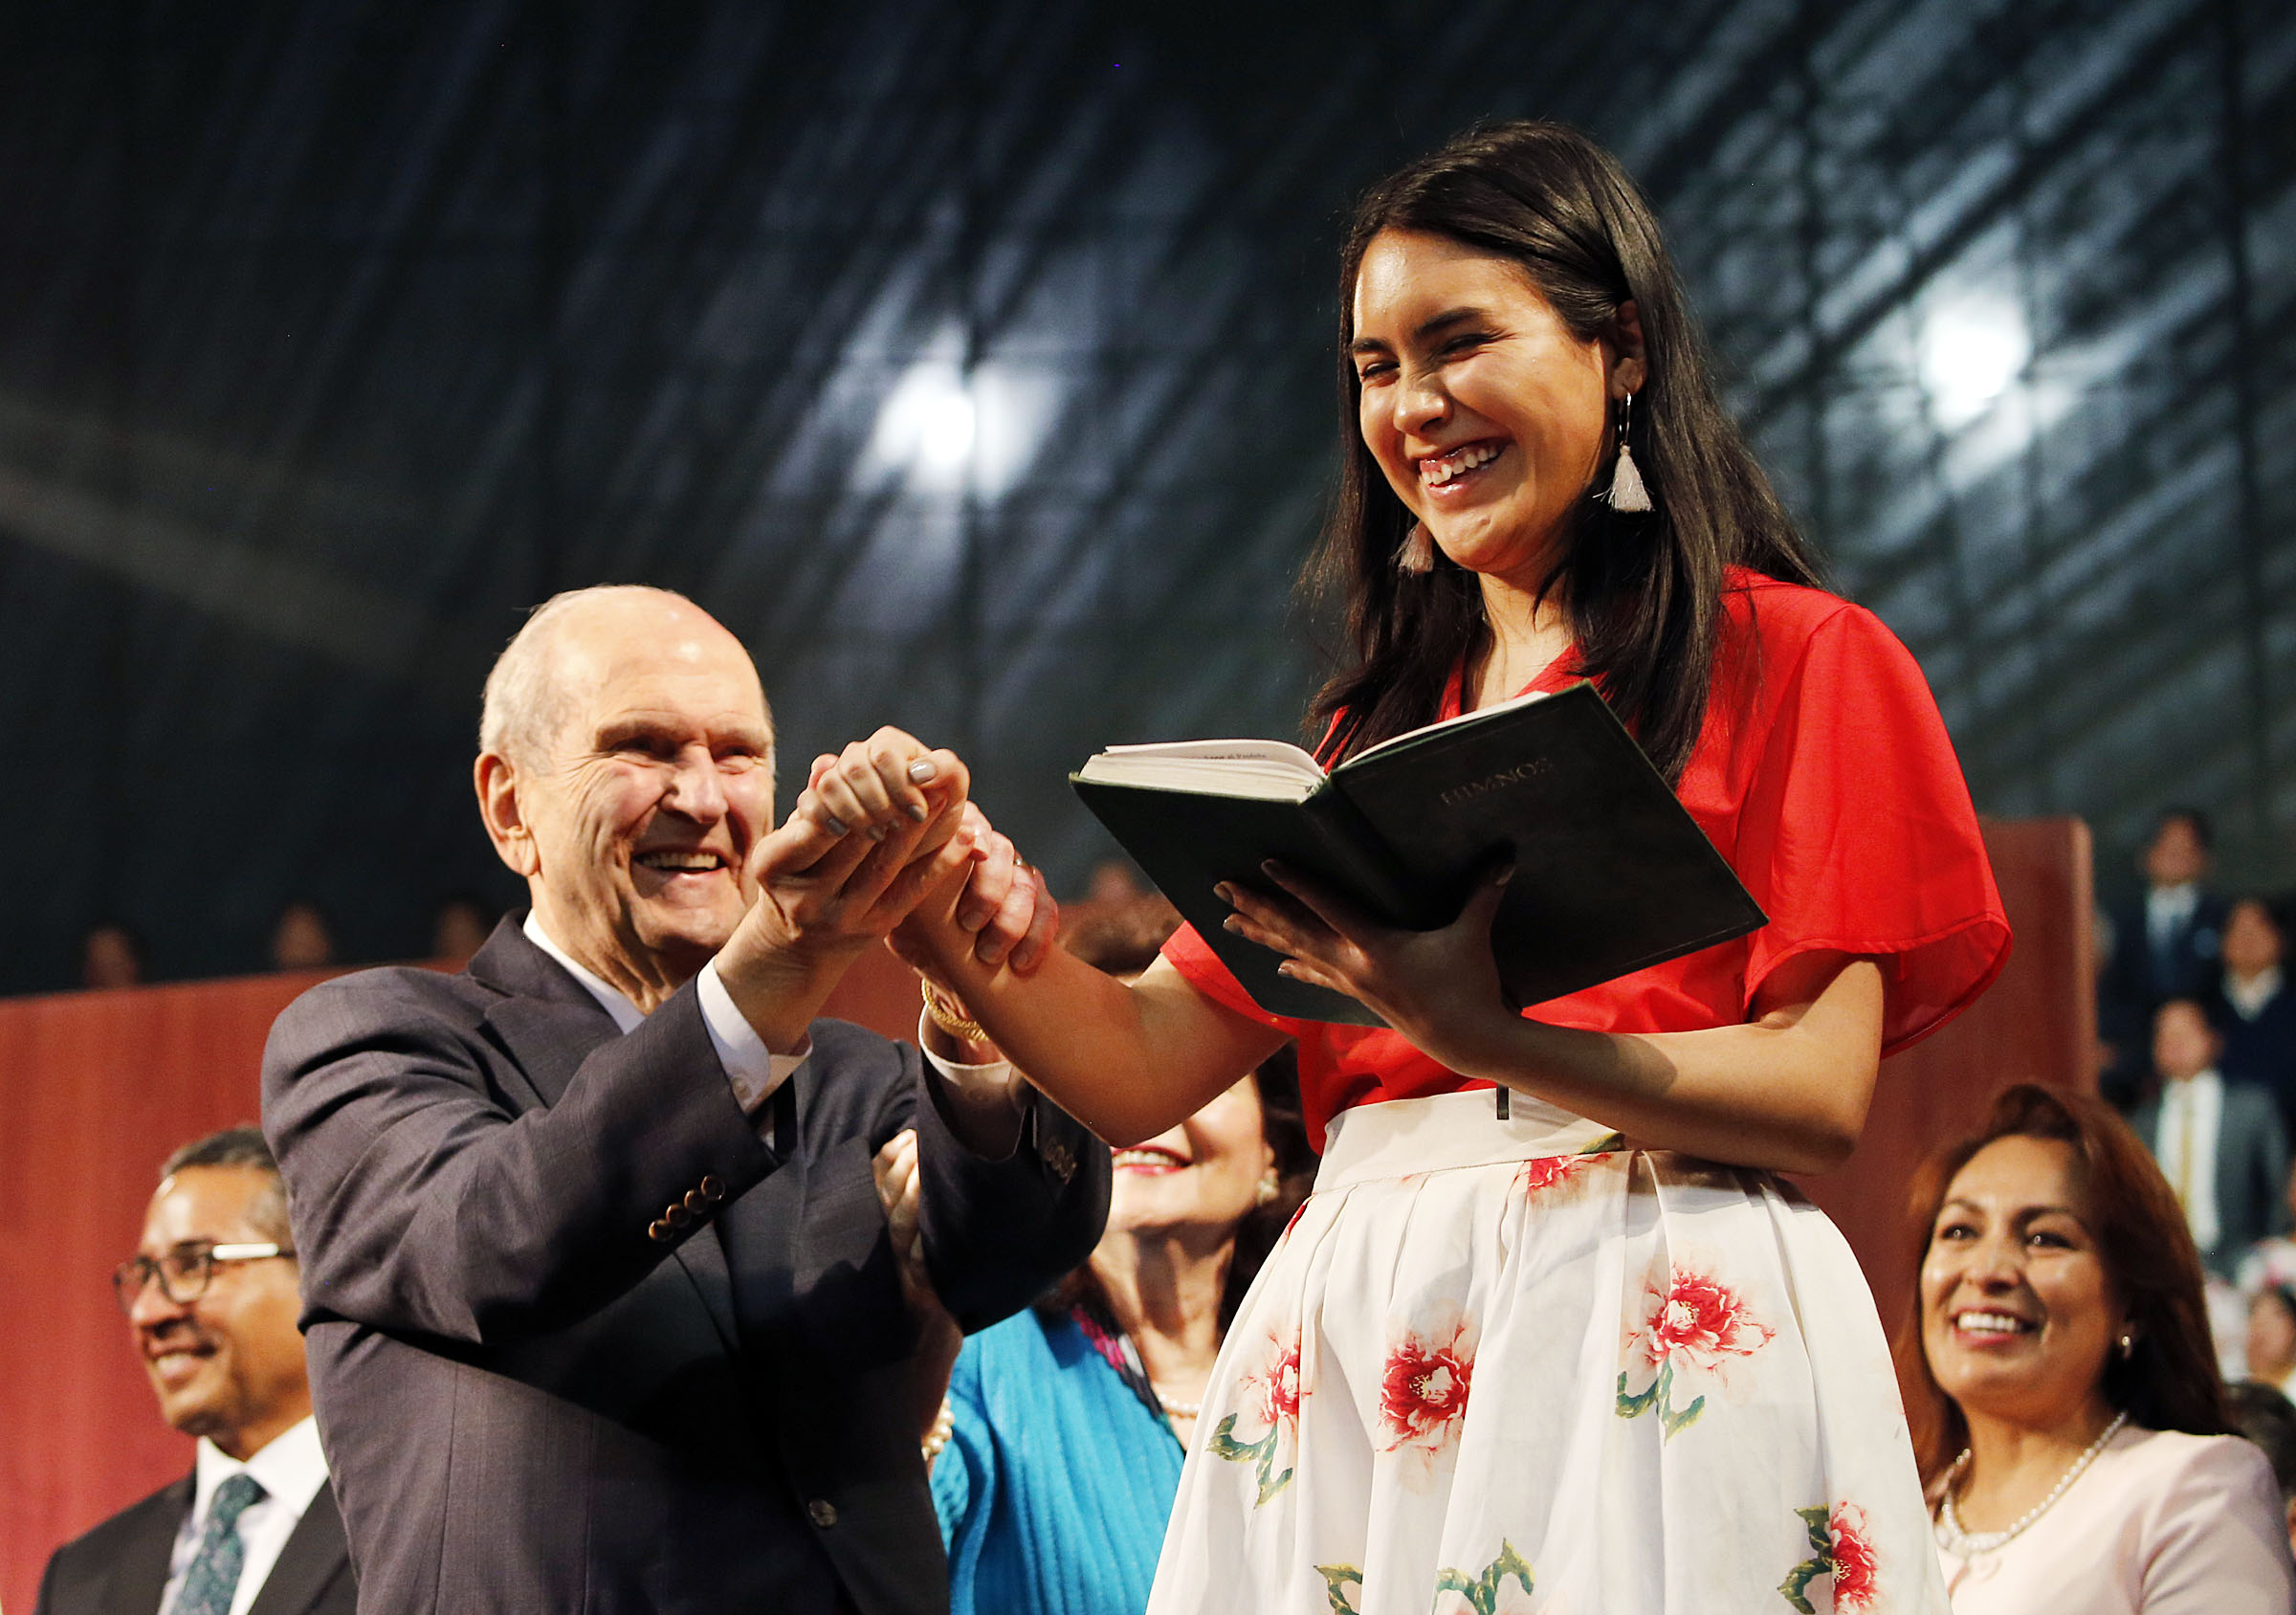 President Russell M. Nelson of The Church of Jesus Christ of Latter-day Saints helps Isabela Castellano as she directs a song at the end of a Latin America Ministry Tour devotional in Quito, Ecuador, on Monday, Aug. 26, 2019.